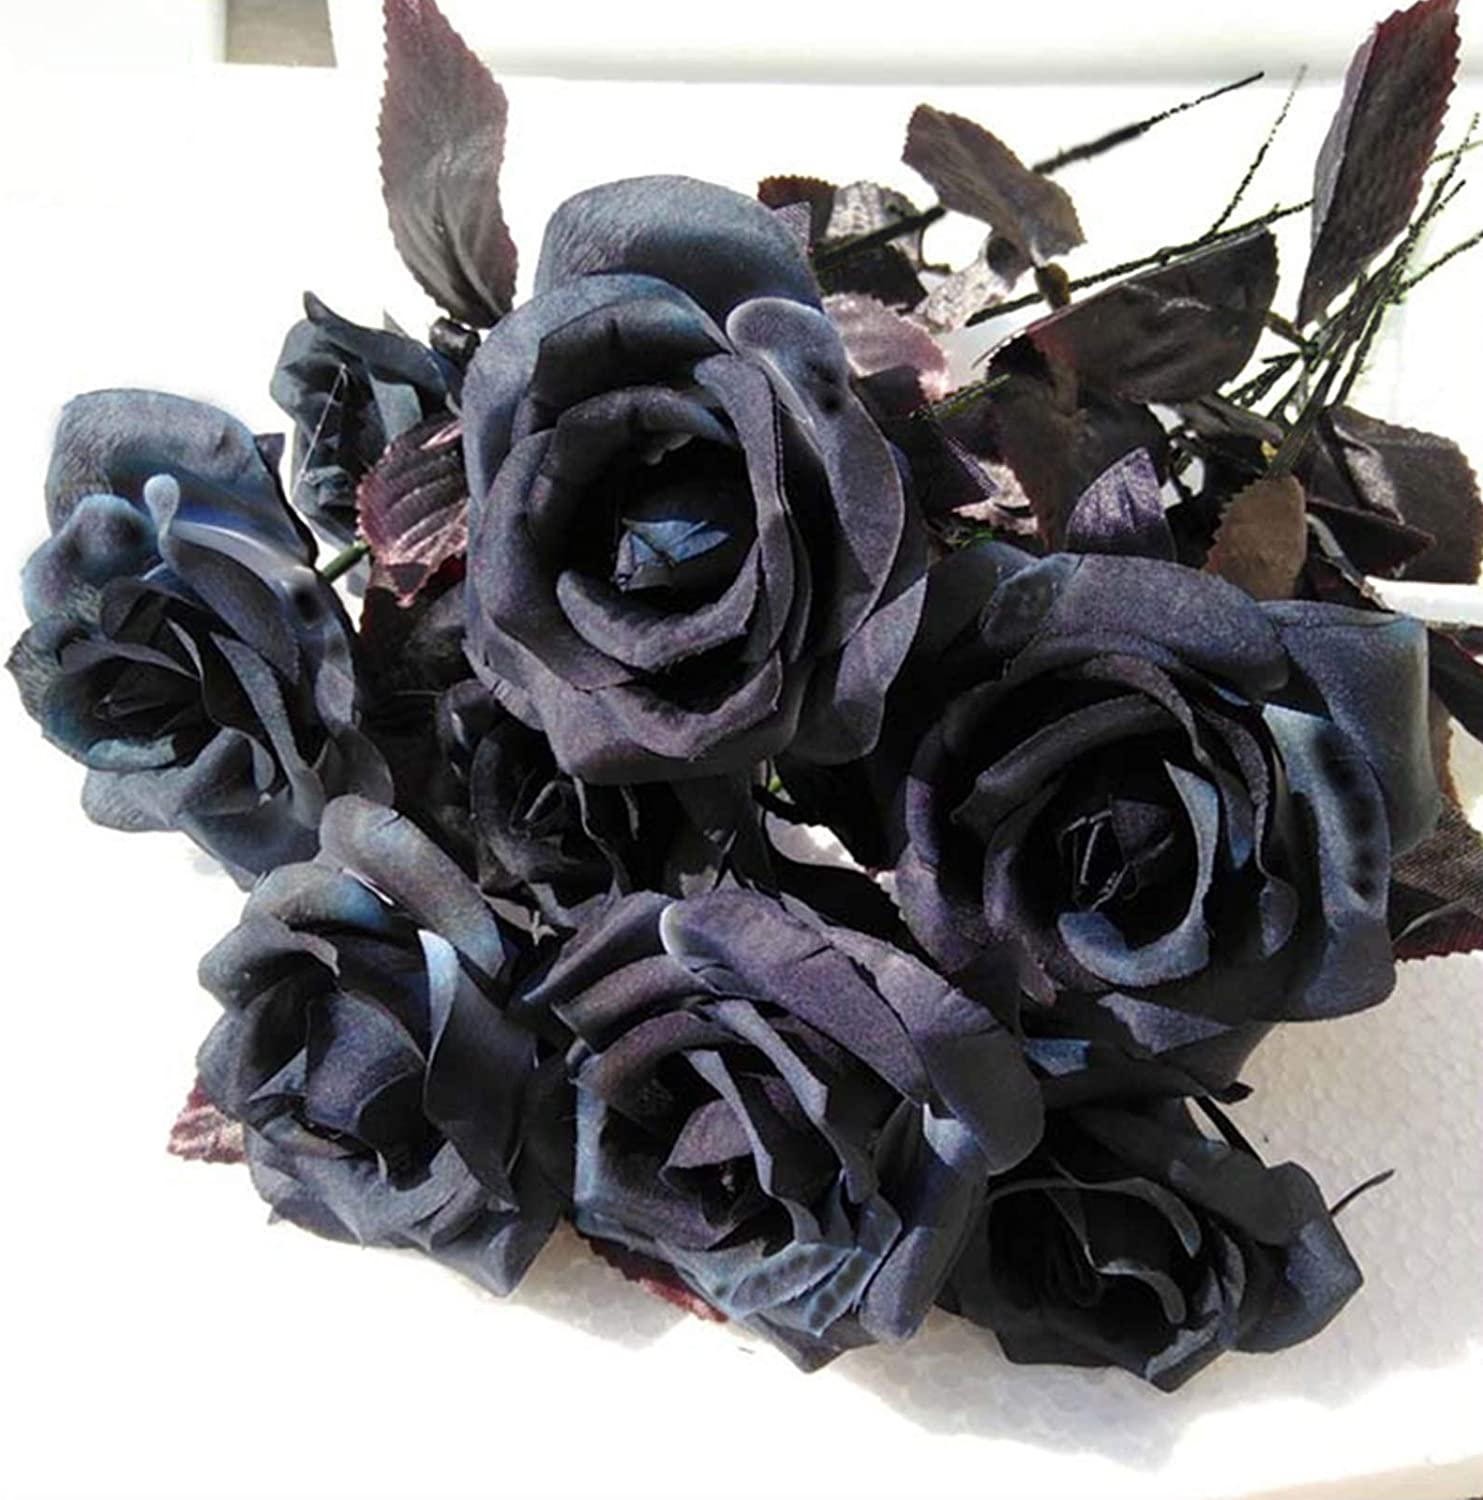 Amazon Com Fdqndxf Natural Artificial Flowers 10 Pcs Artificial Silk Black Rose Flower Fake Flower For Halloween Black Flower Home Diy Wedding Party Decoration Home Kitchen